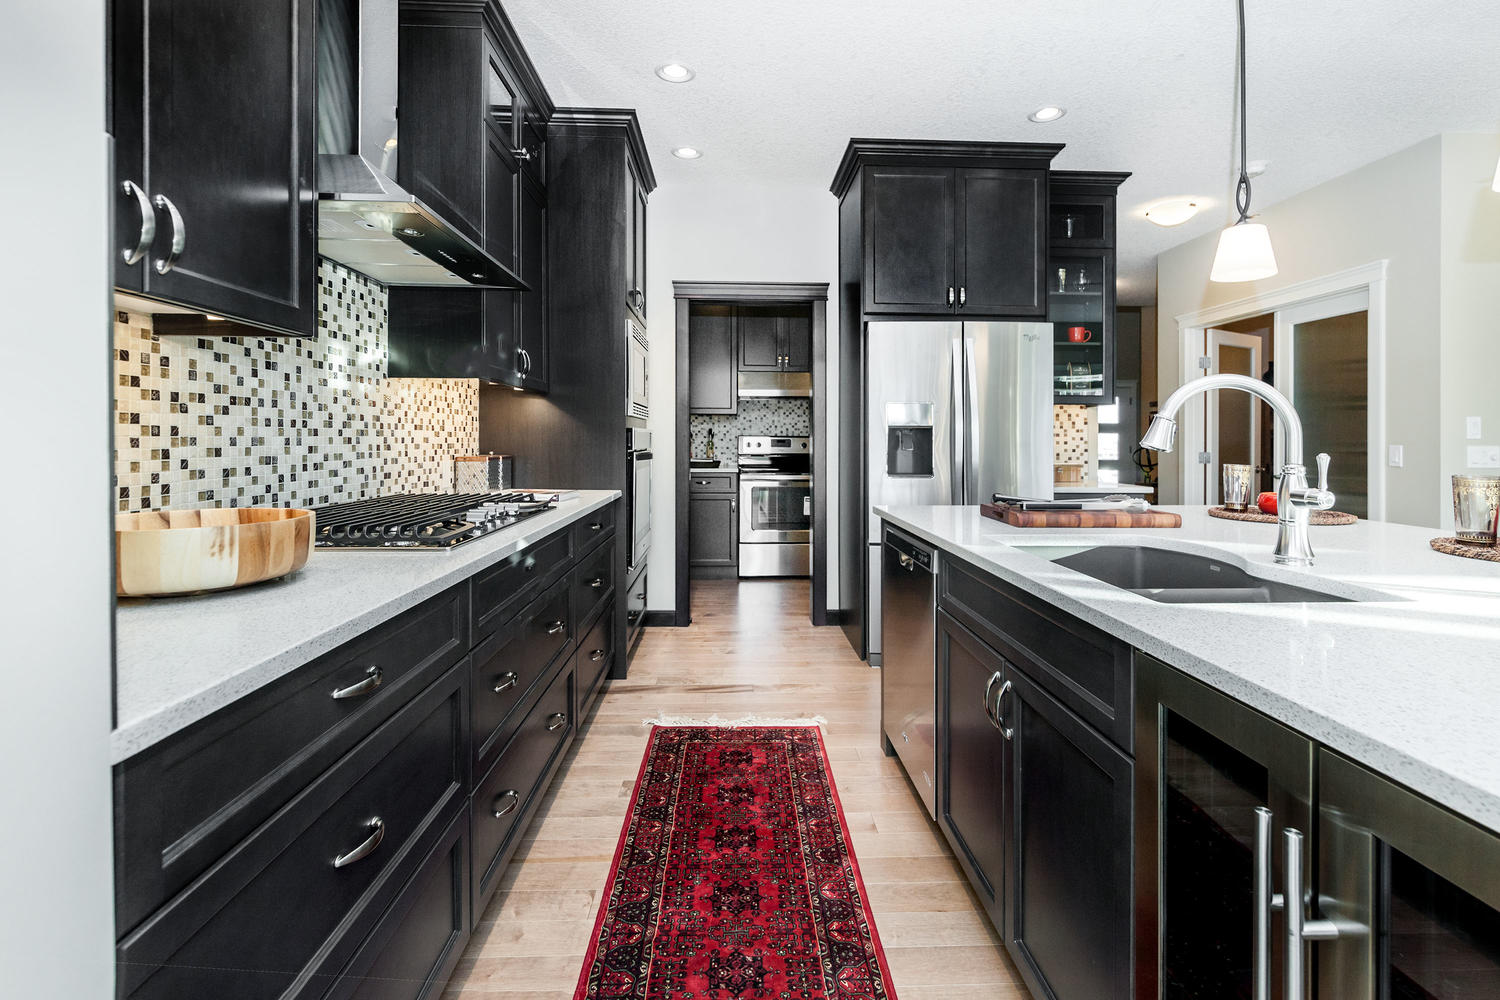 the kitchen with island and an additional butler's pantry in a pacesetter front drive home.